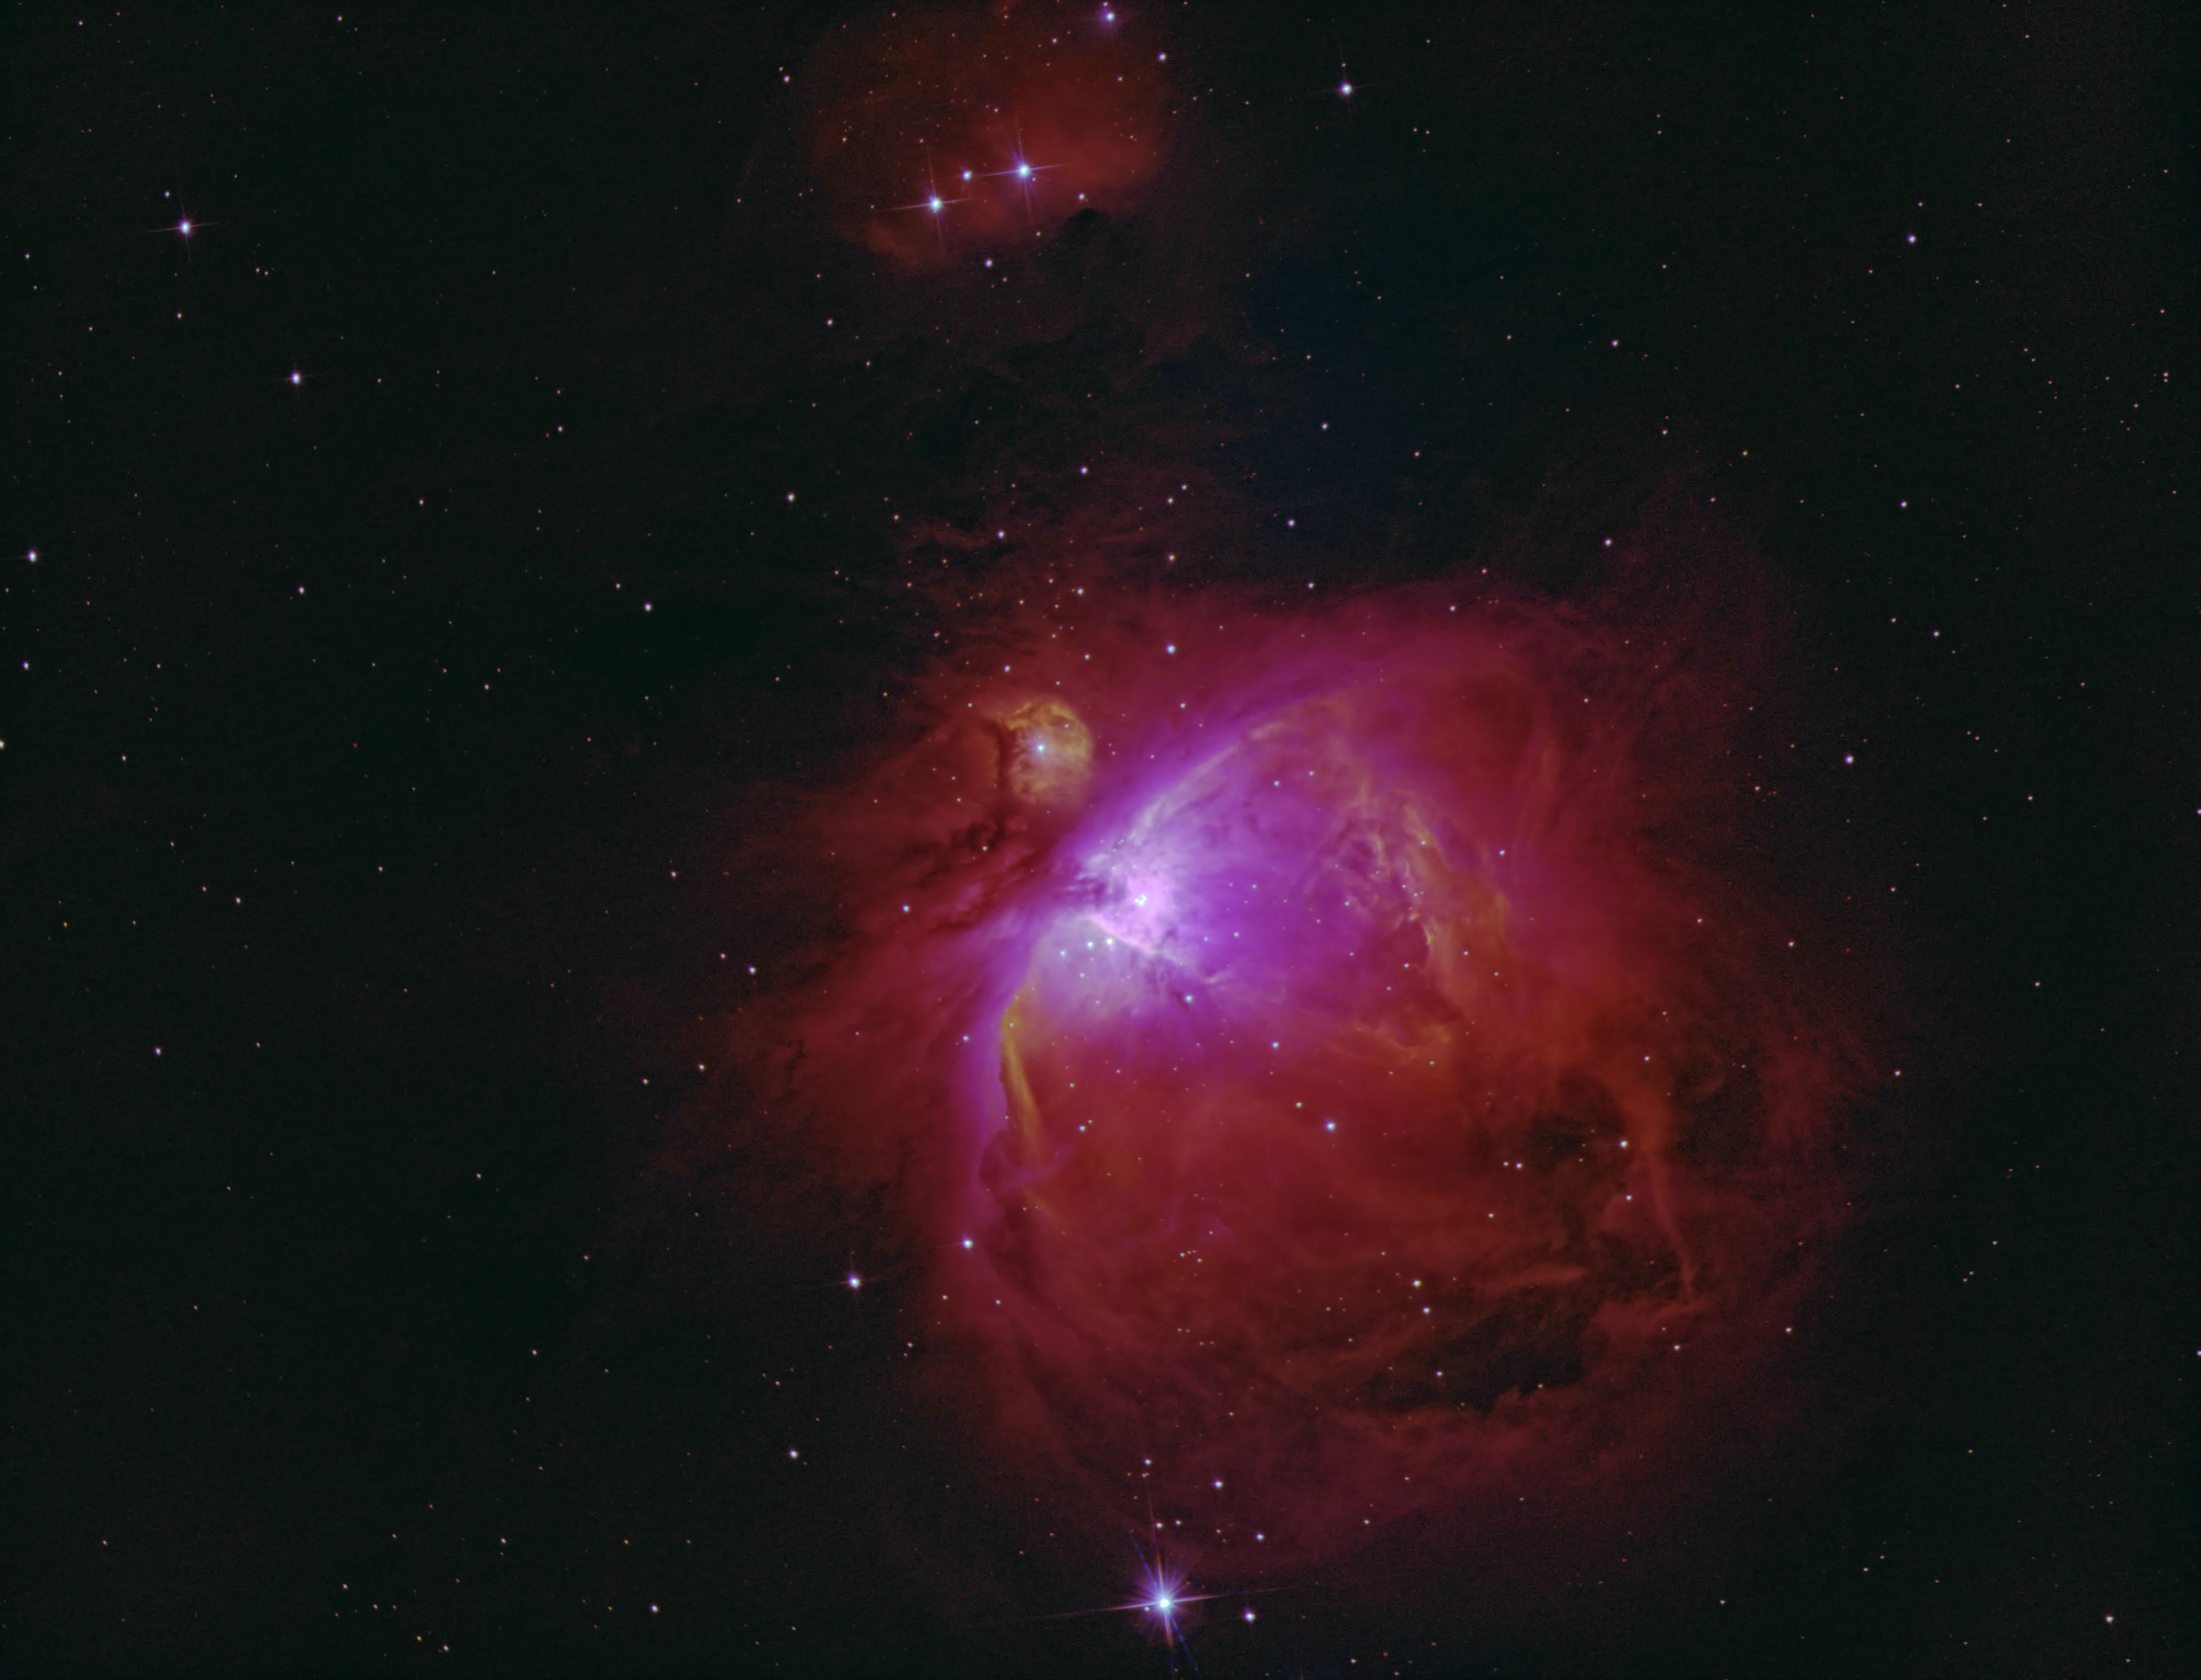 M42 in narrowband Ha Sii Oiii